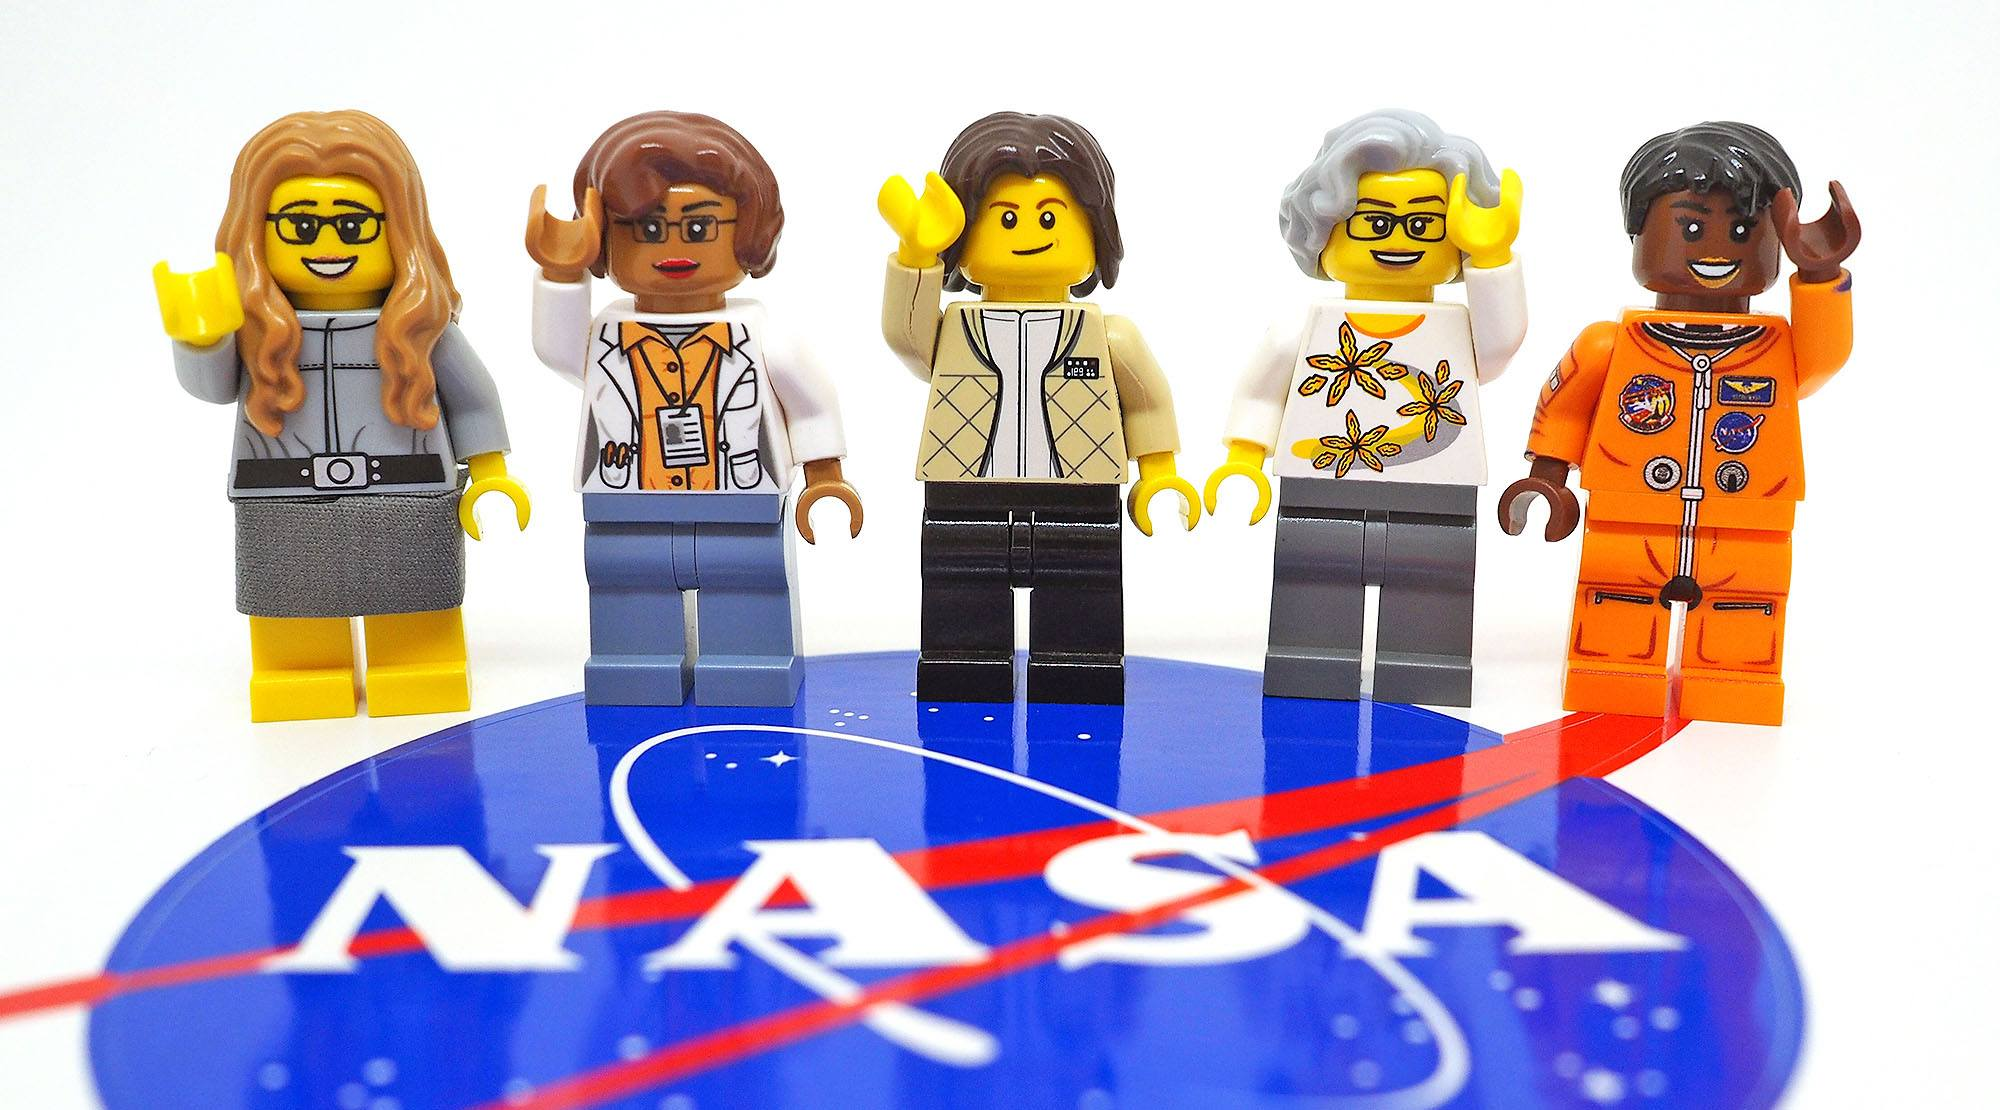 Mockups of the five minifigs in the new women of nasa lego set maia weinstock flickr